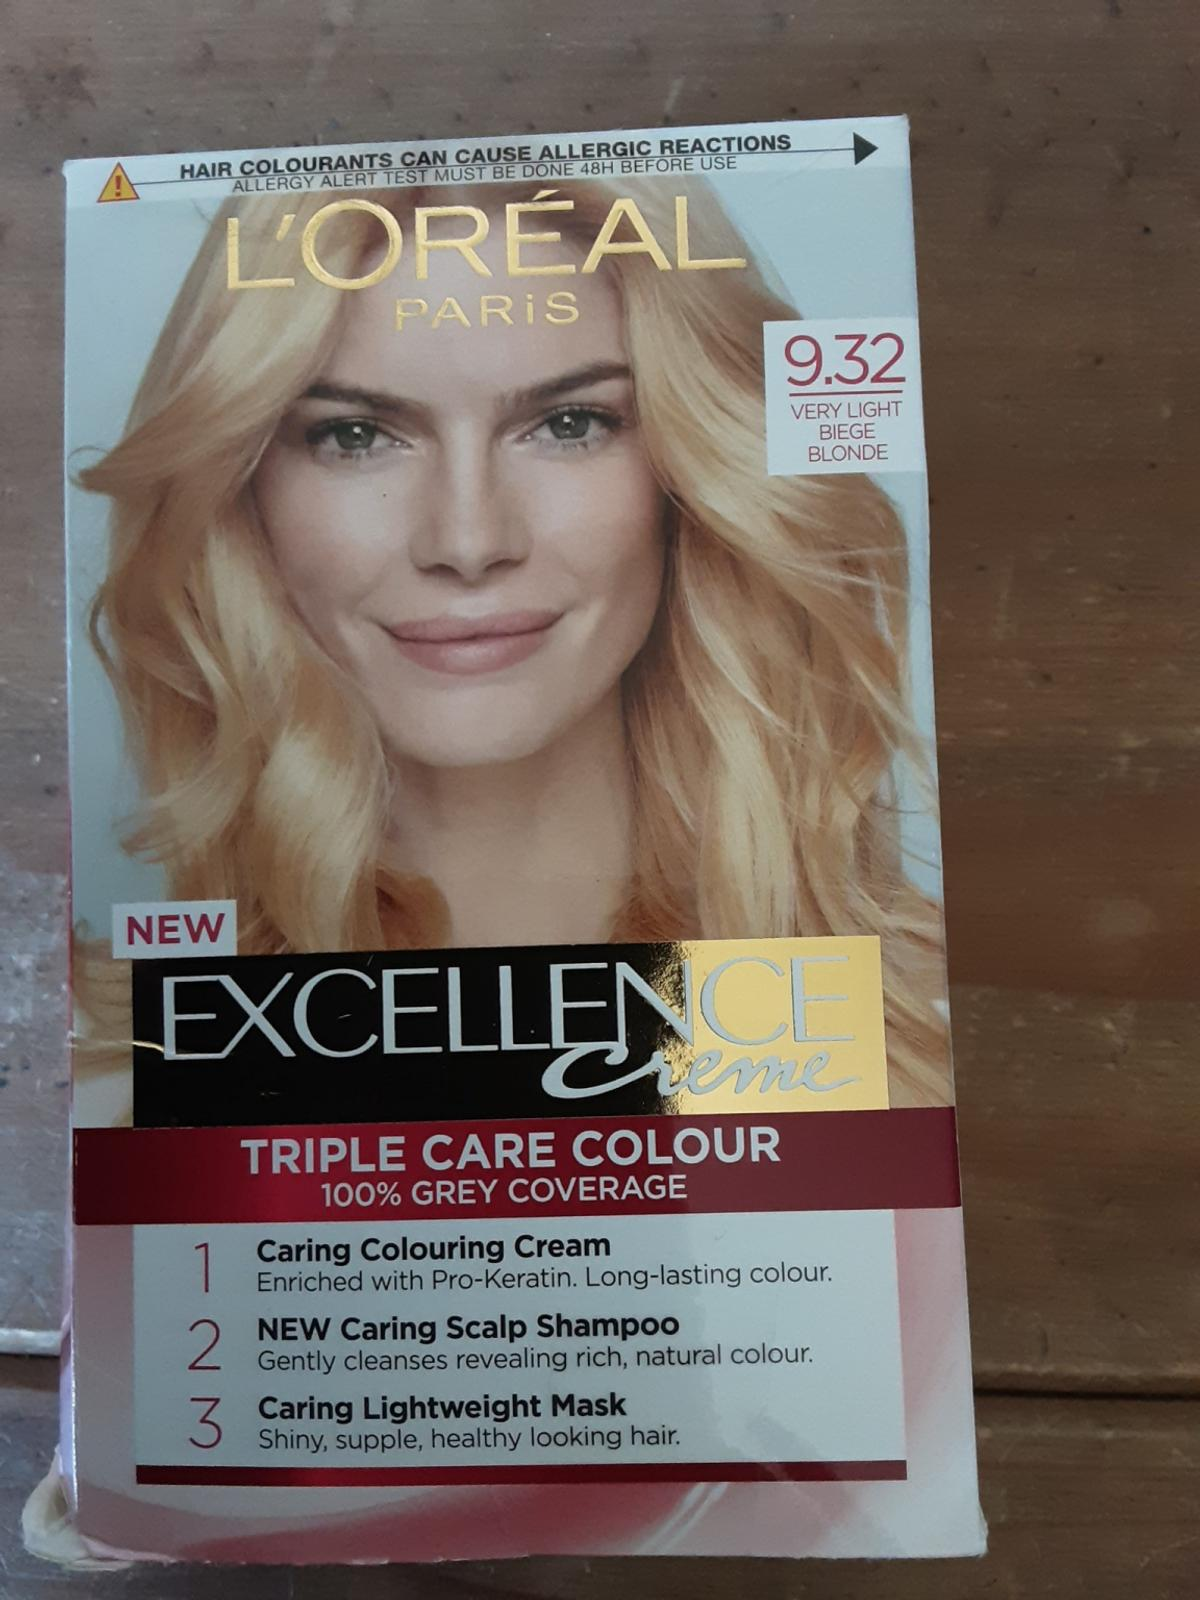 Excellence hair colour 9.32 very light beige blonde, ordered this online but wrong colour.